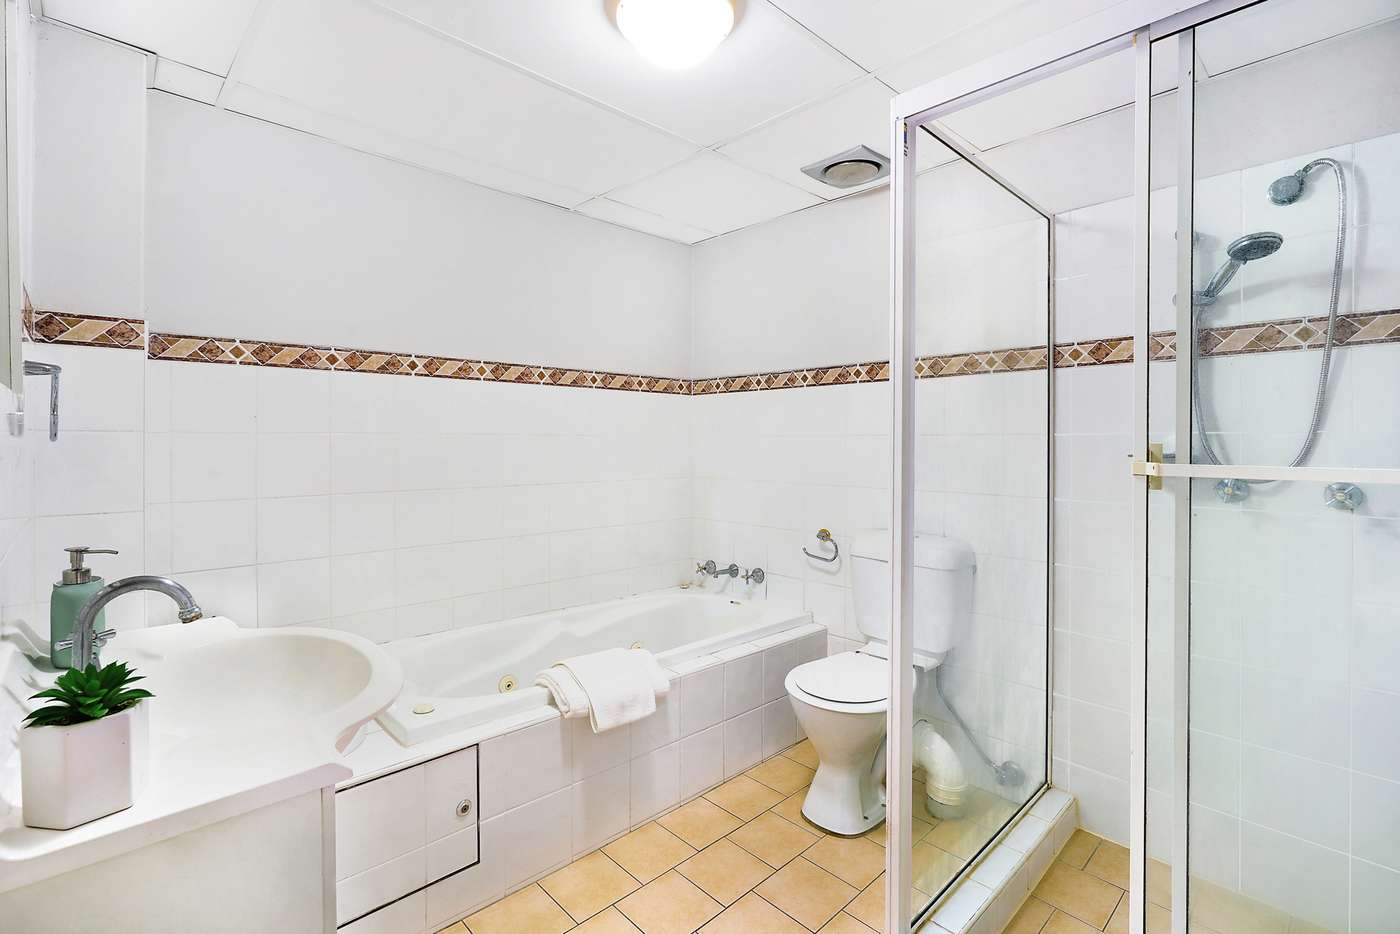 Fifth view of Homely apartment listing, 6/46-48 Carnarvon Street, Silverwater NSW 2128